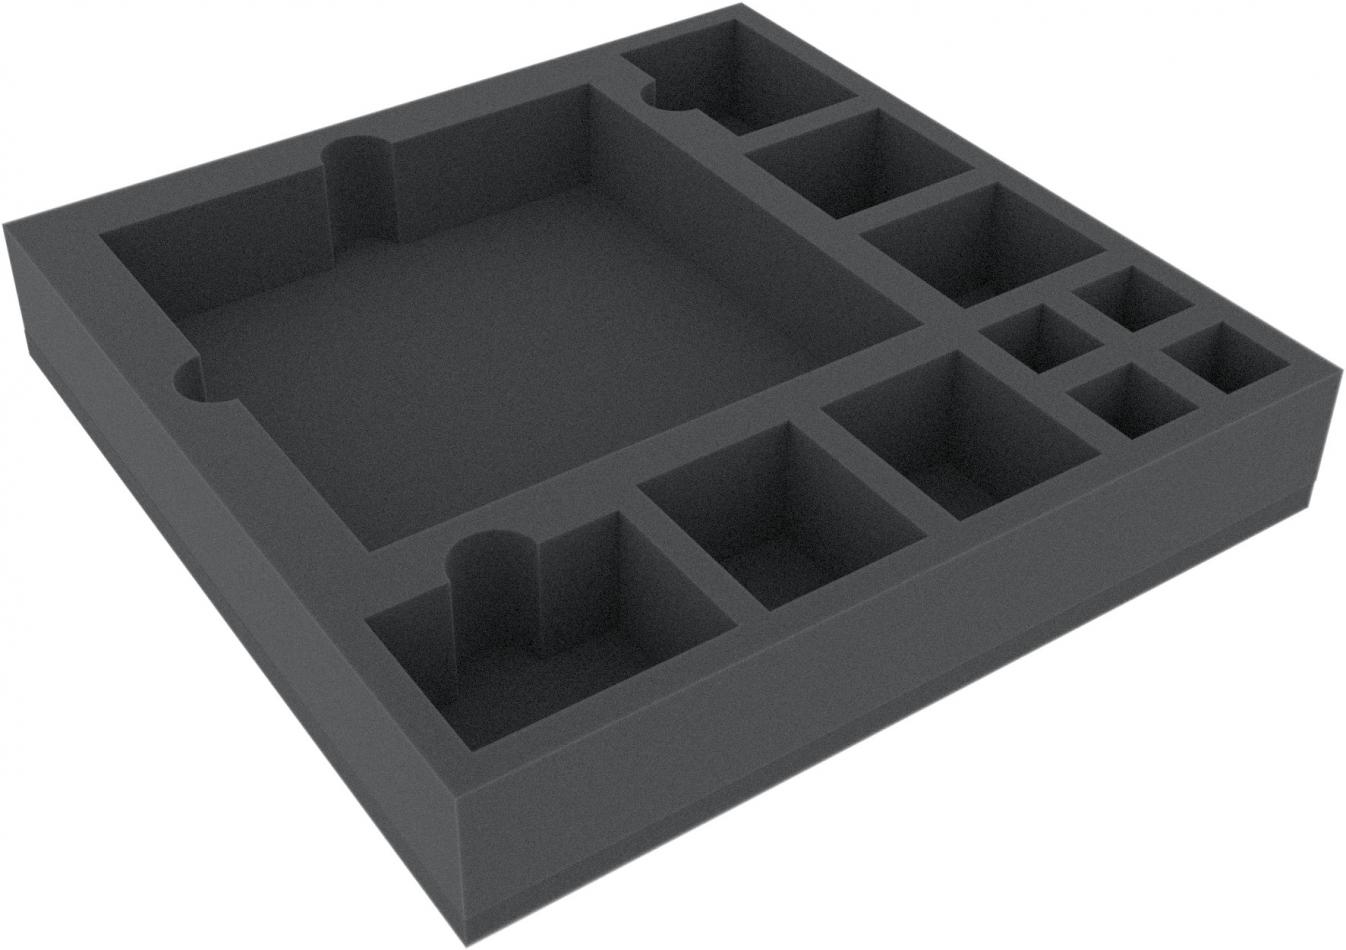 AFJB050BO 285 mm x 285 mm x 50 mm (2 inches) foam tray for board game boxes